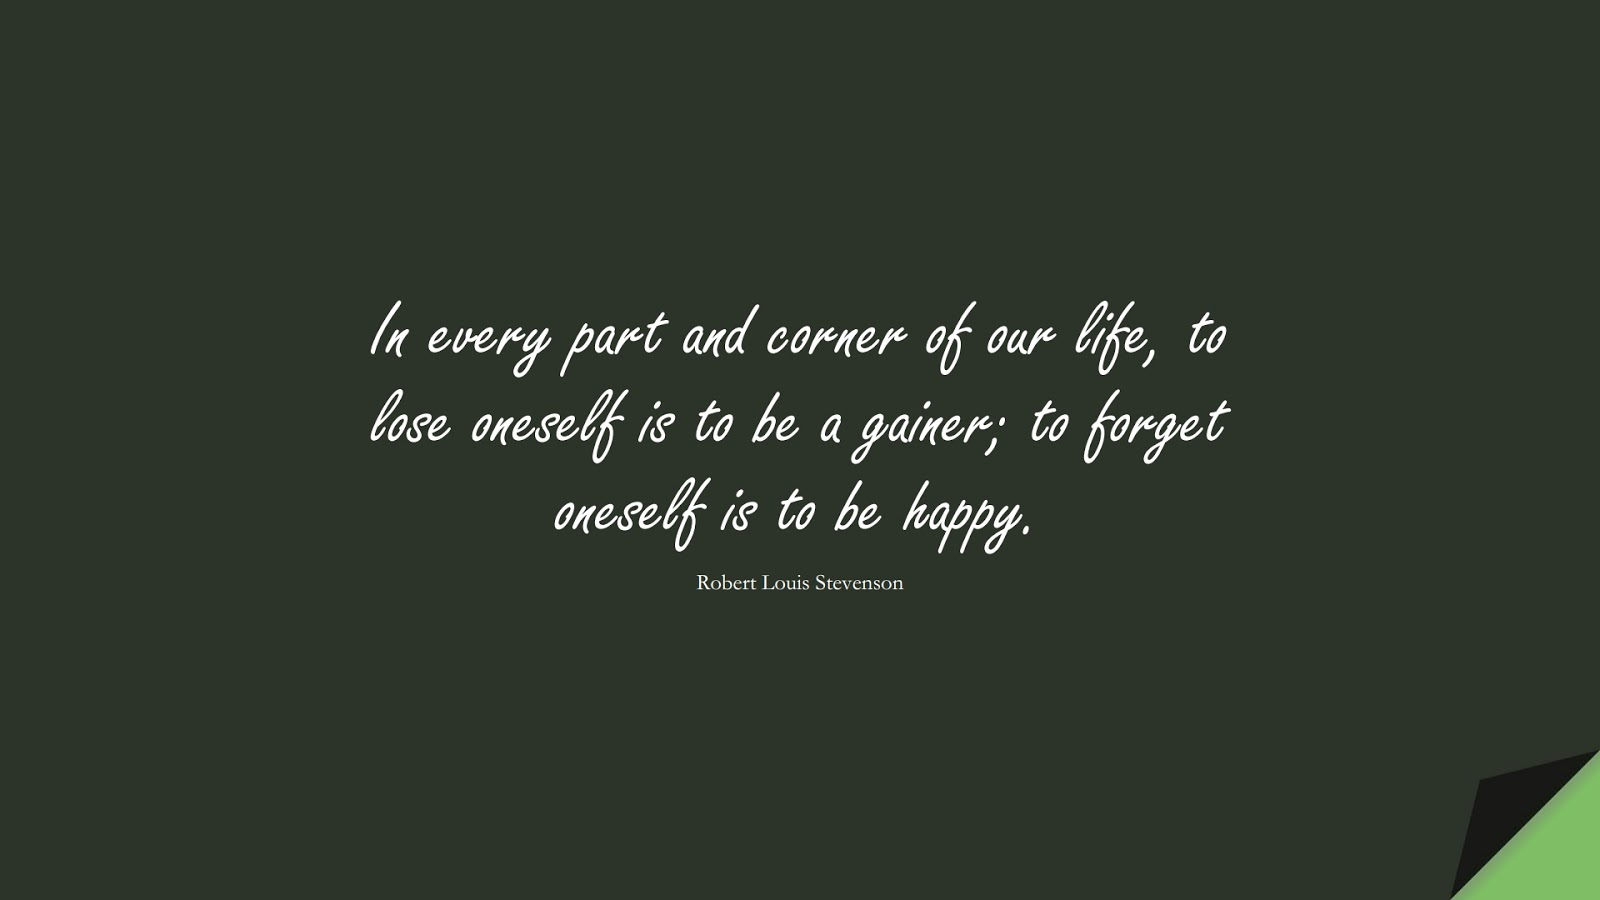 In every part and corner of our life, to lose oneself is to be a gainer; to forget oneself is to be happy. (Robert Louis Stevenson);  #HappinessQuotes